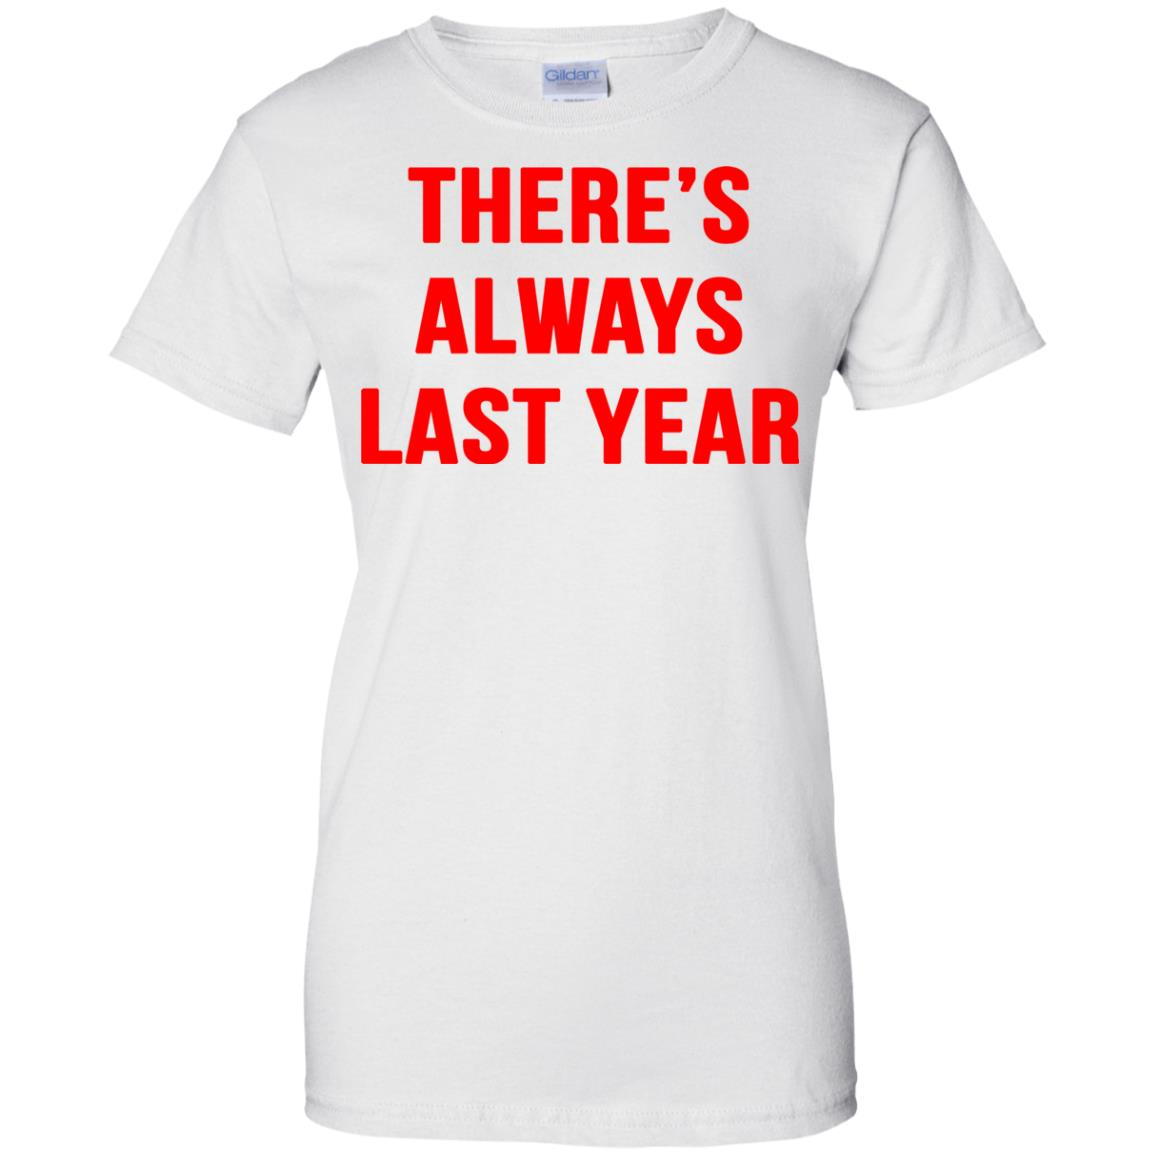 image 1924 - There's always last year t-shirt, long sleeve